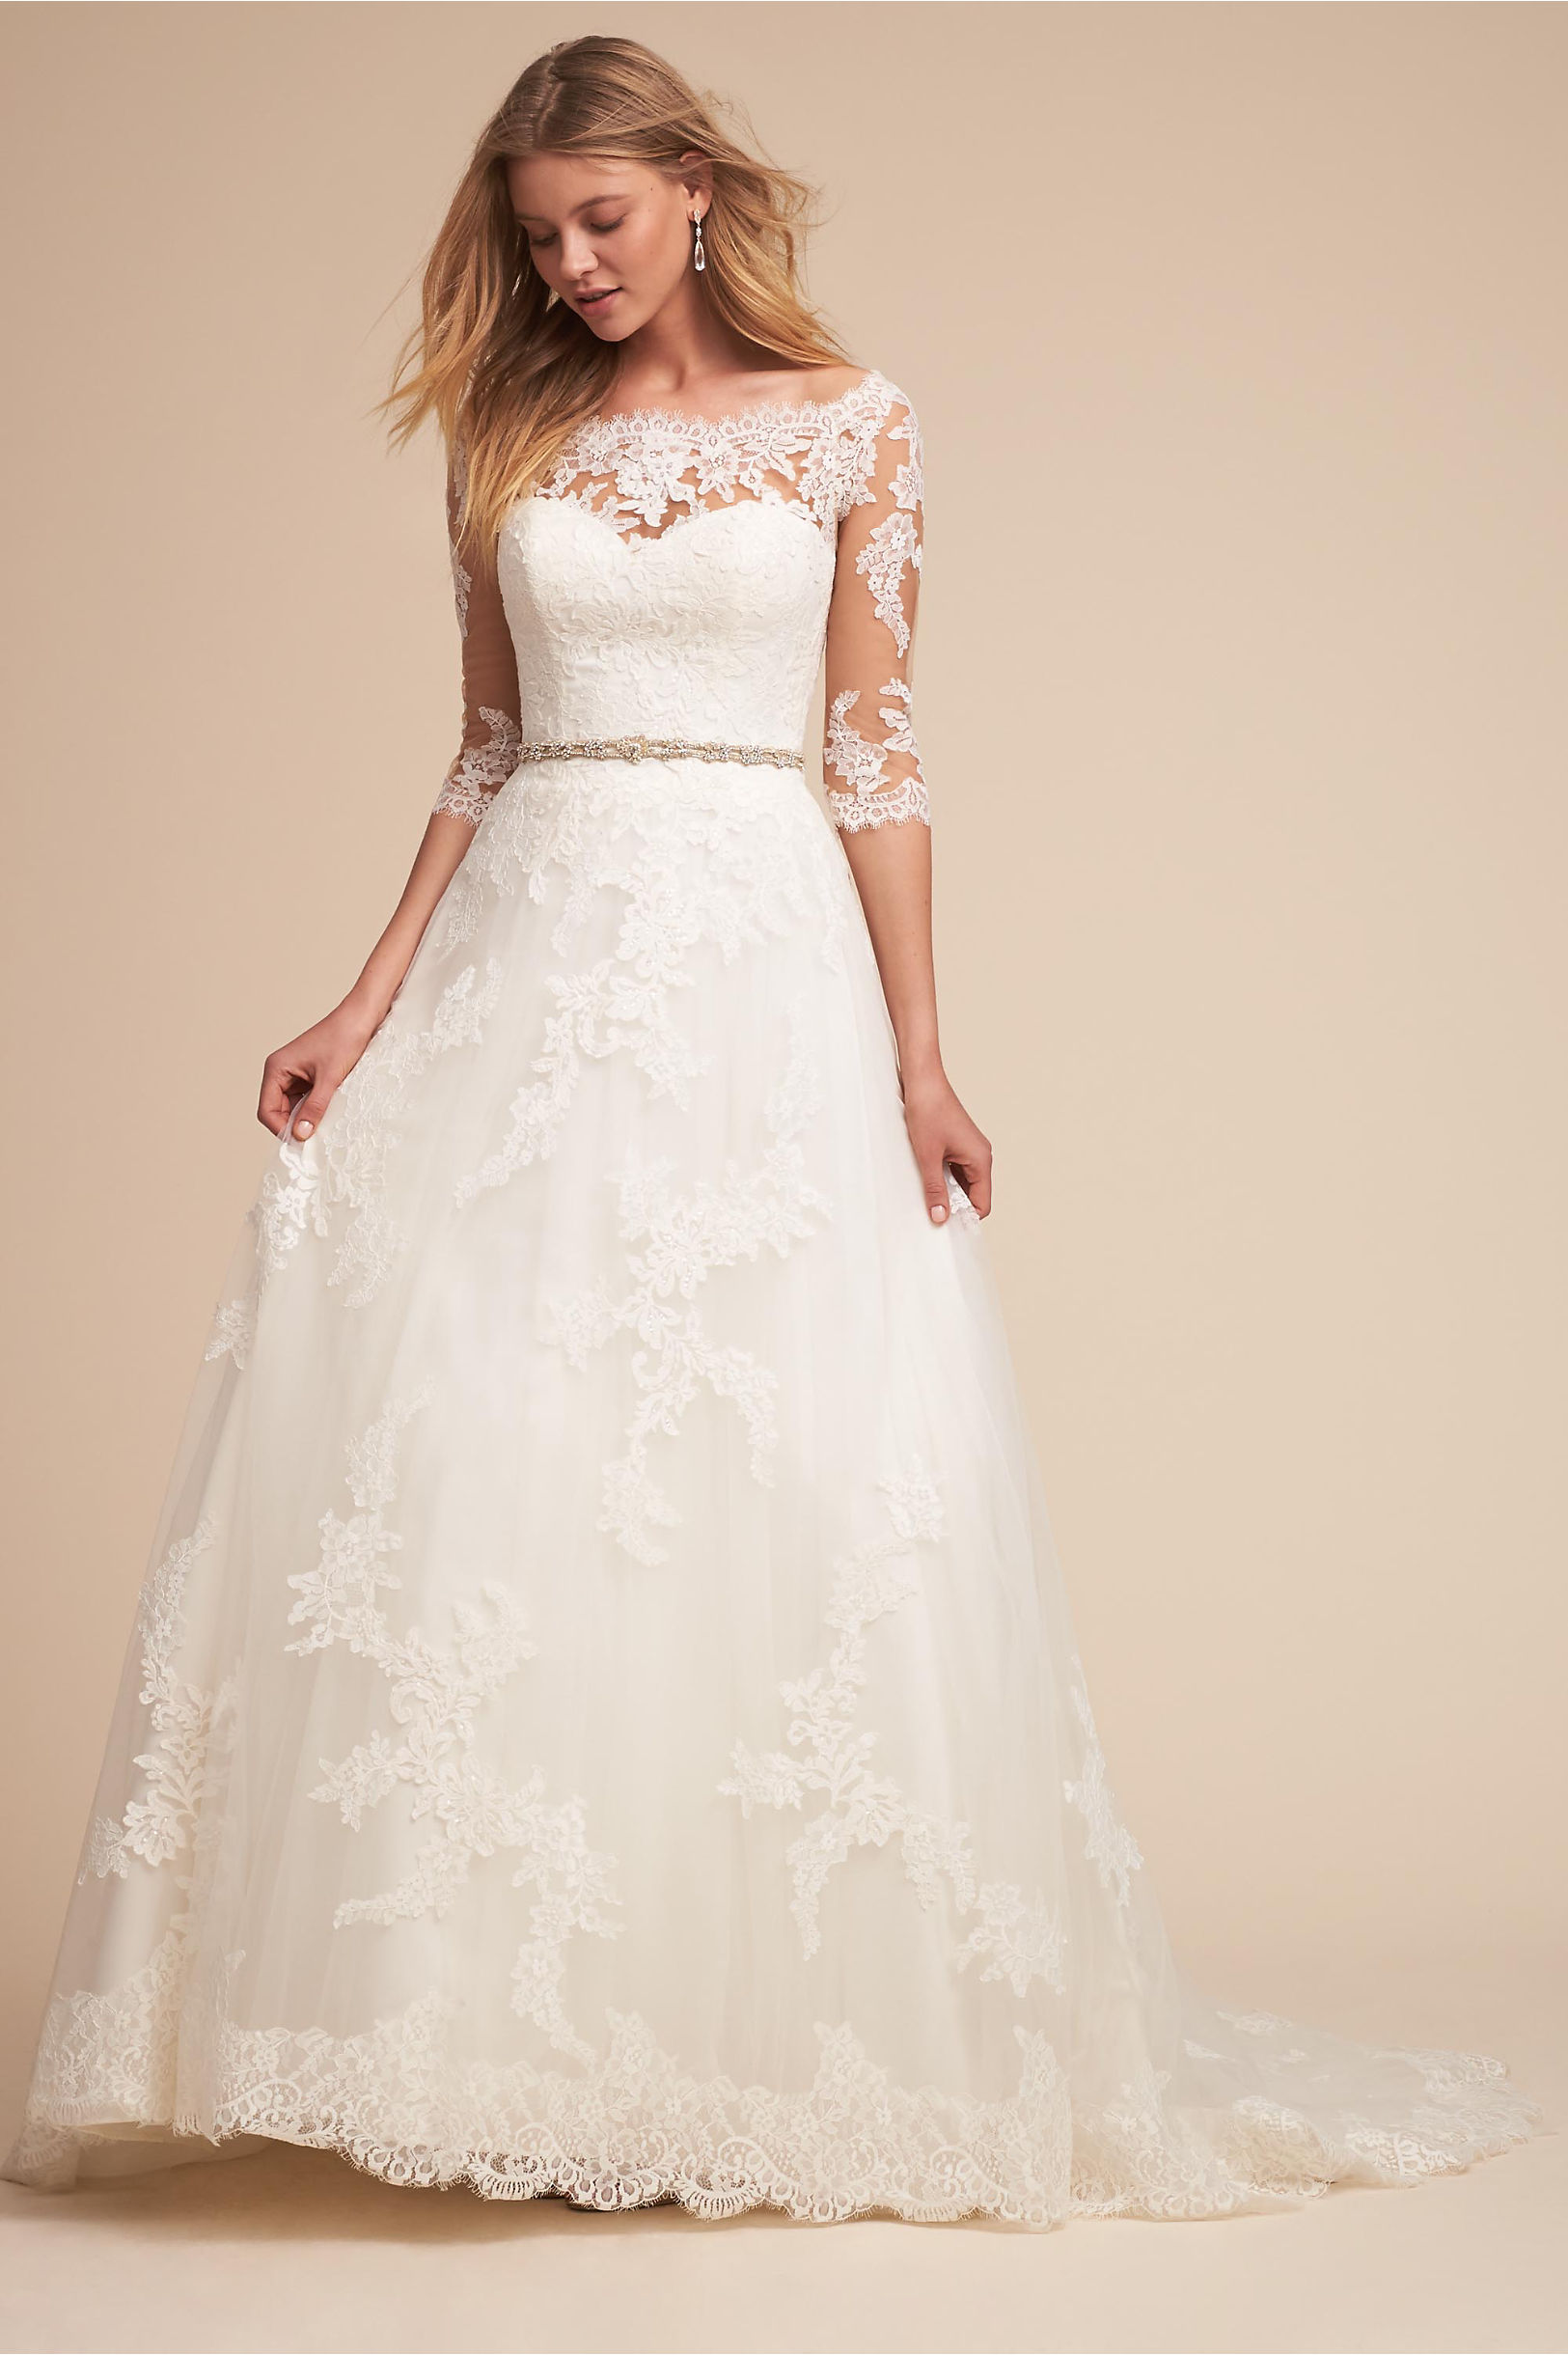 Windsor a line wedding dress with sheer off shoulder lace bodice pronovias bhldn spring 2018